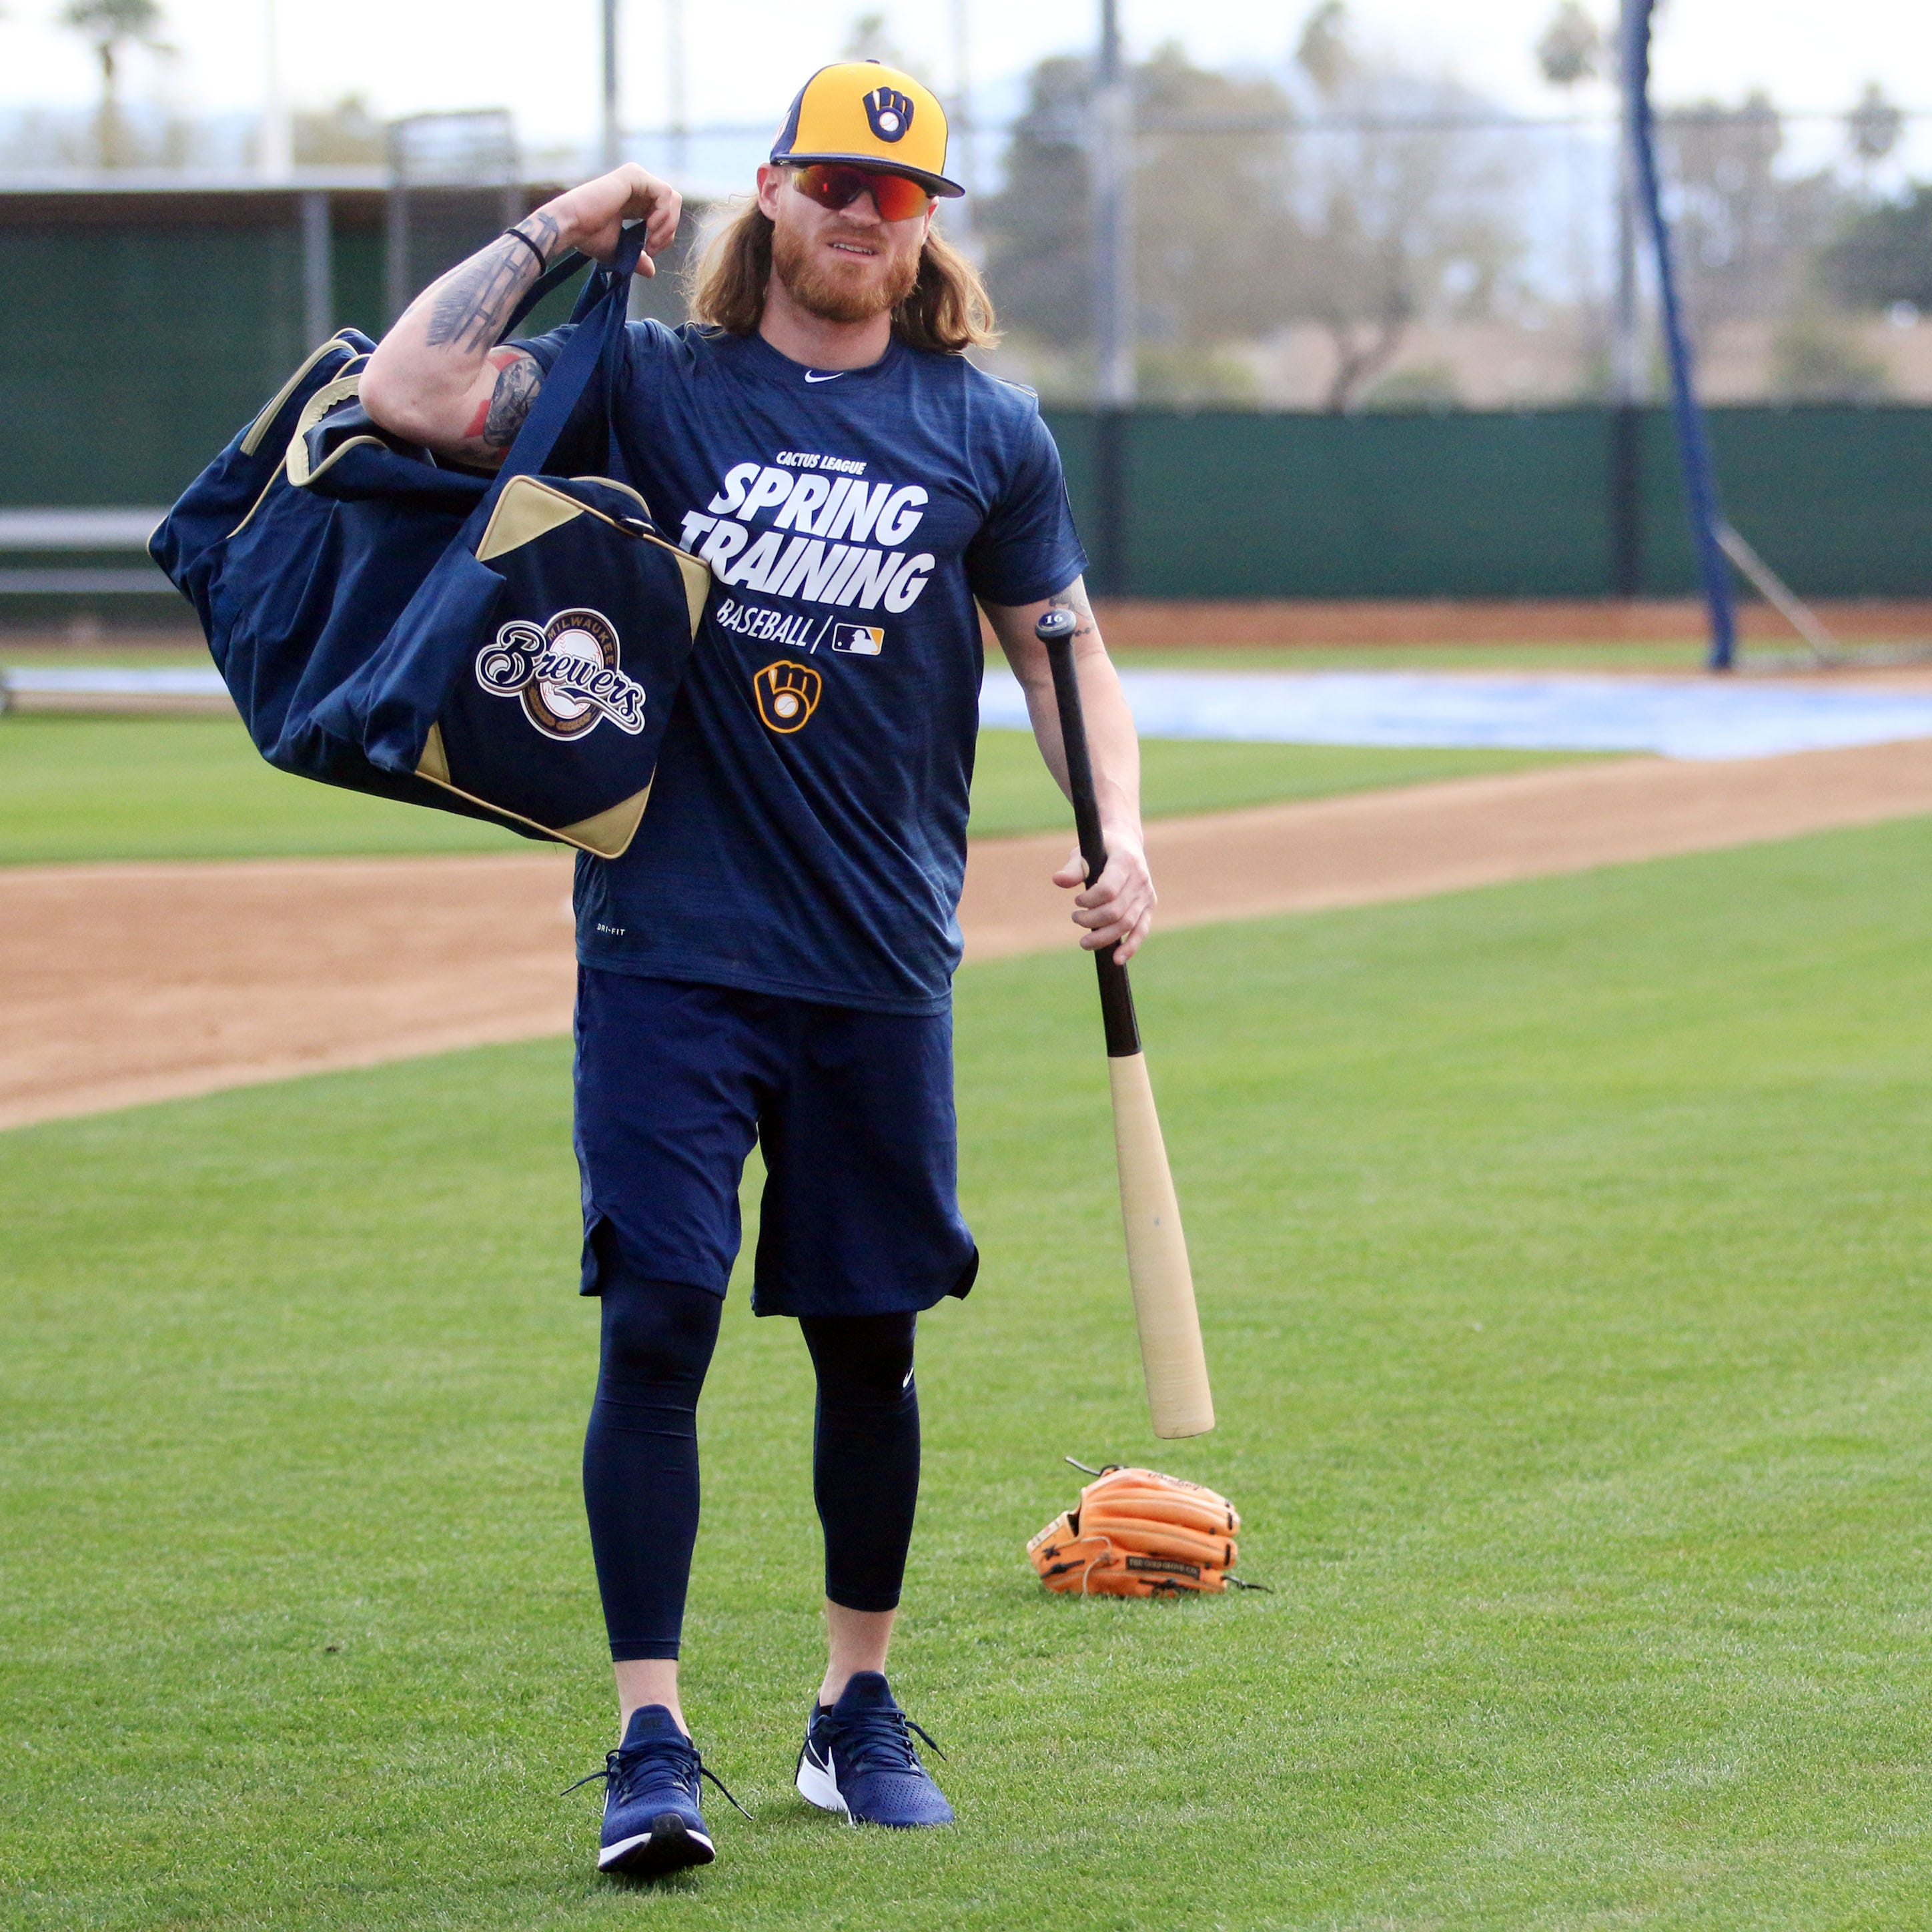 Bench: Versatile outfielder Ben Gamel is looking forward to a fresh start with the Brewers